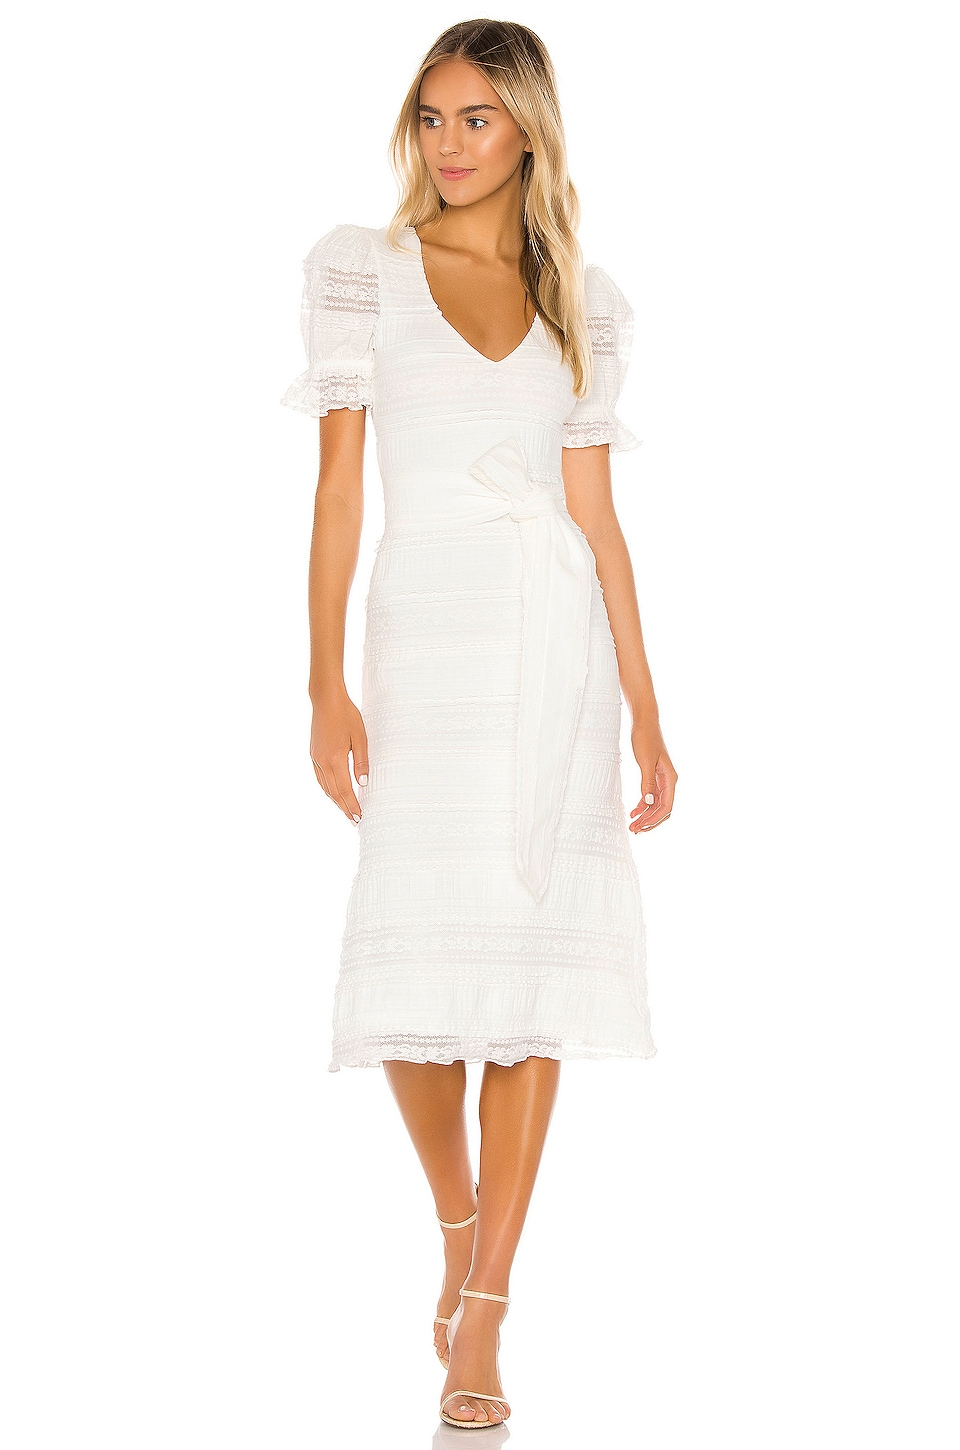 Quinn Midi Dress             Tularosa                                                                                                       CA$ 238.87 9